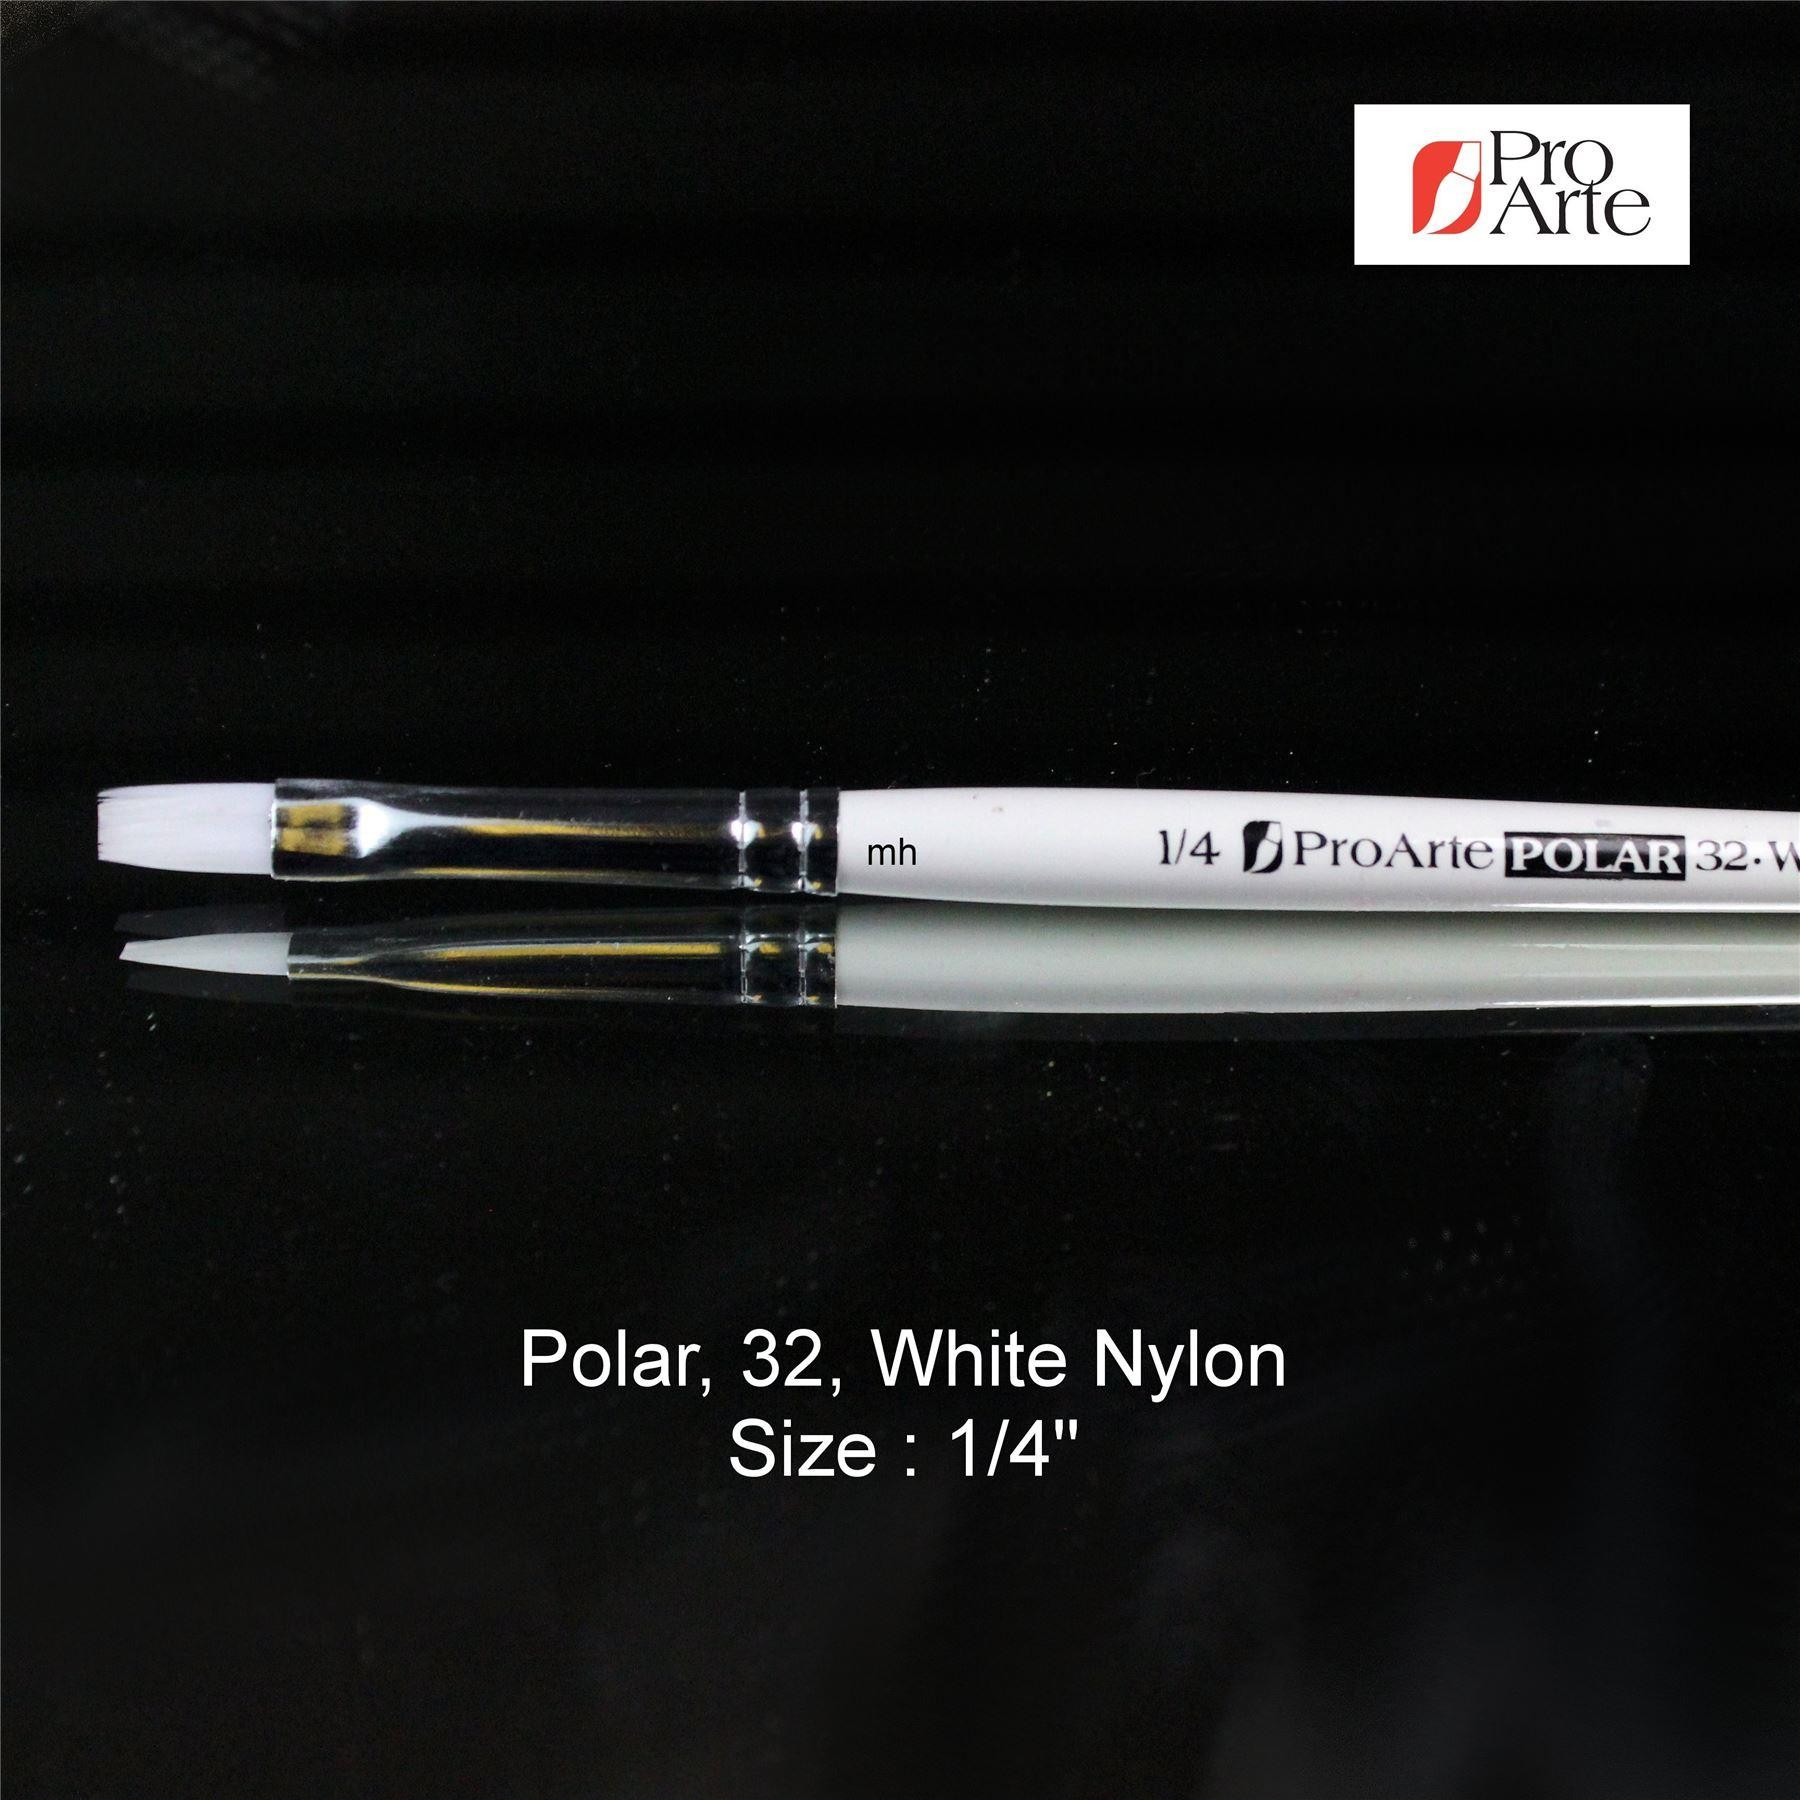 Pro Arte Series 32 flat artists brushes